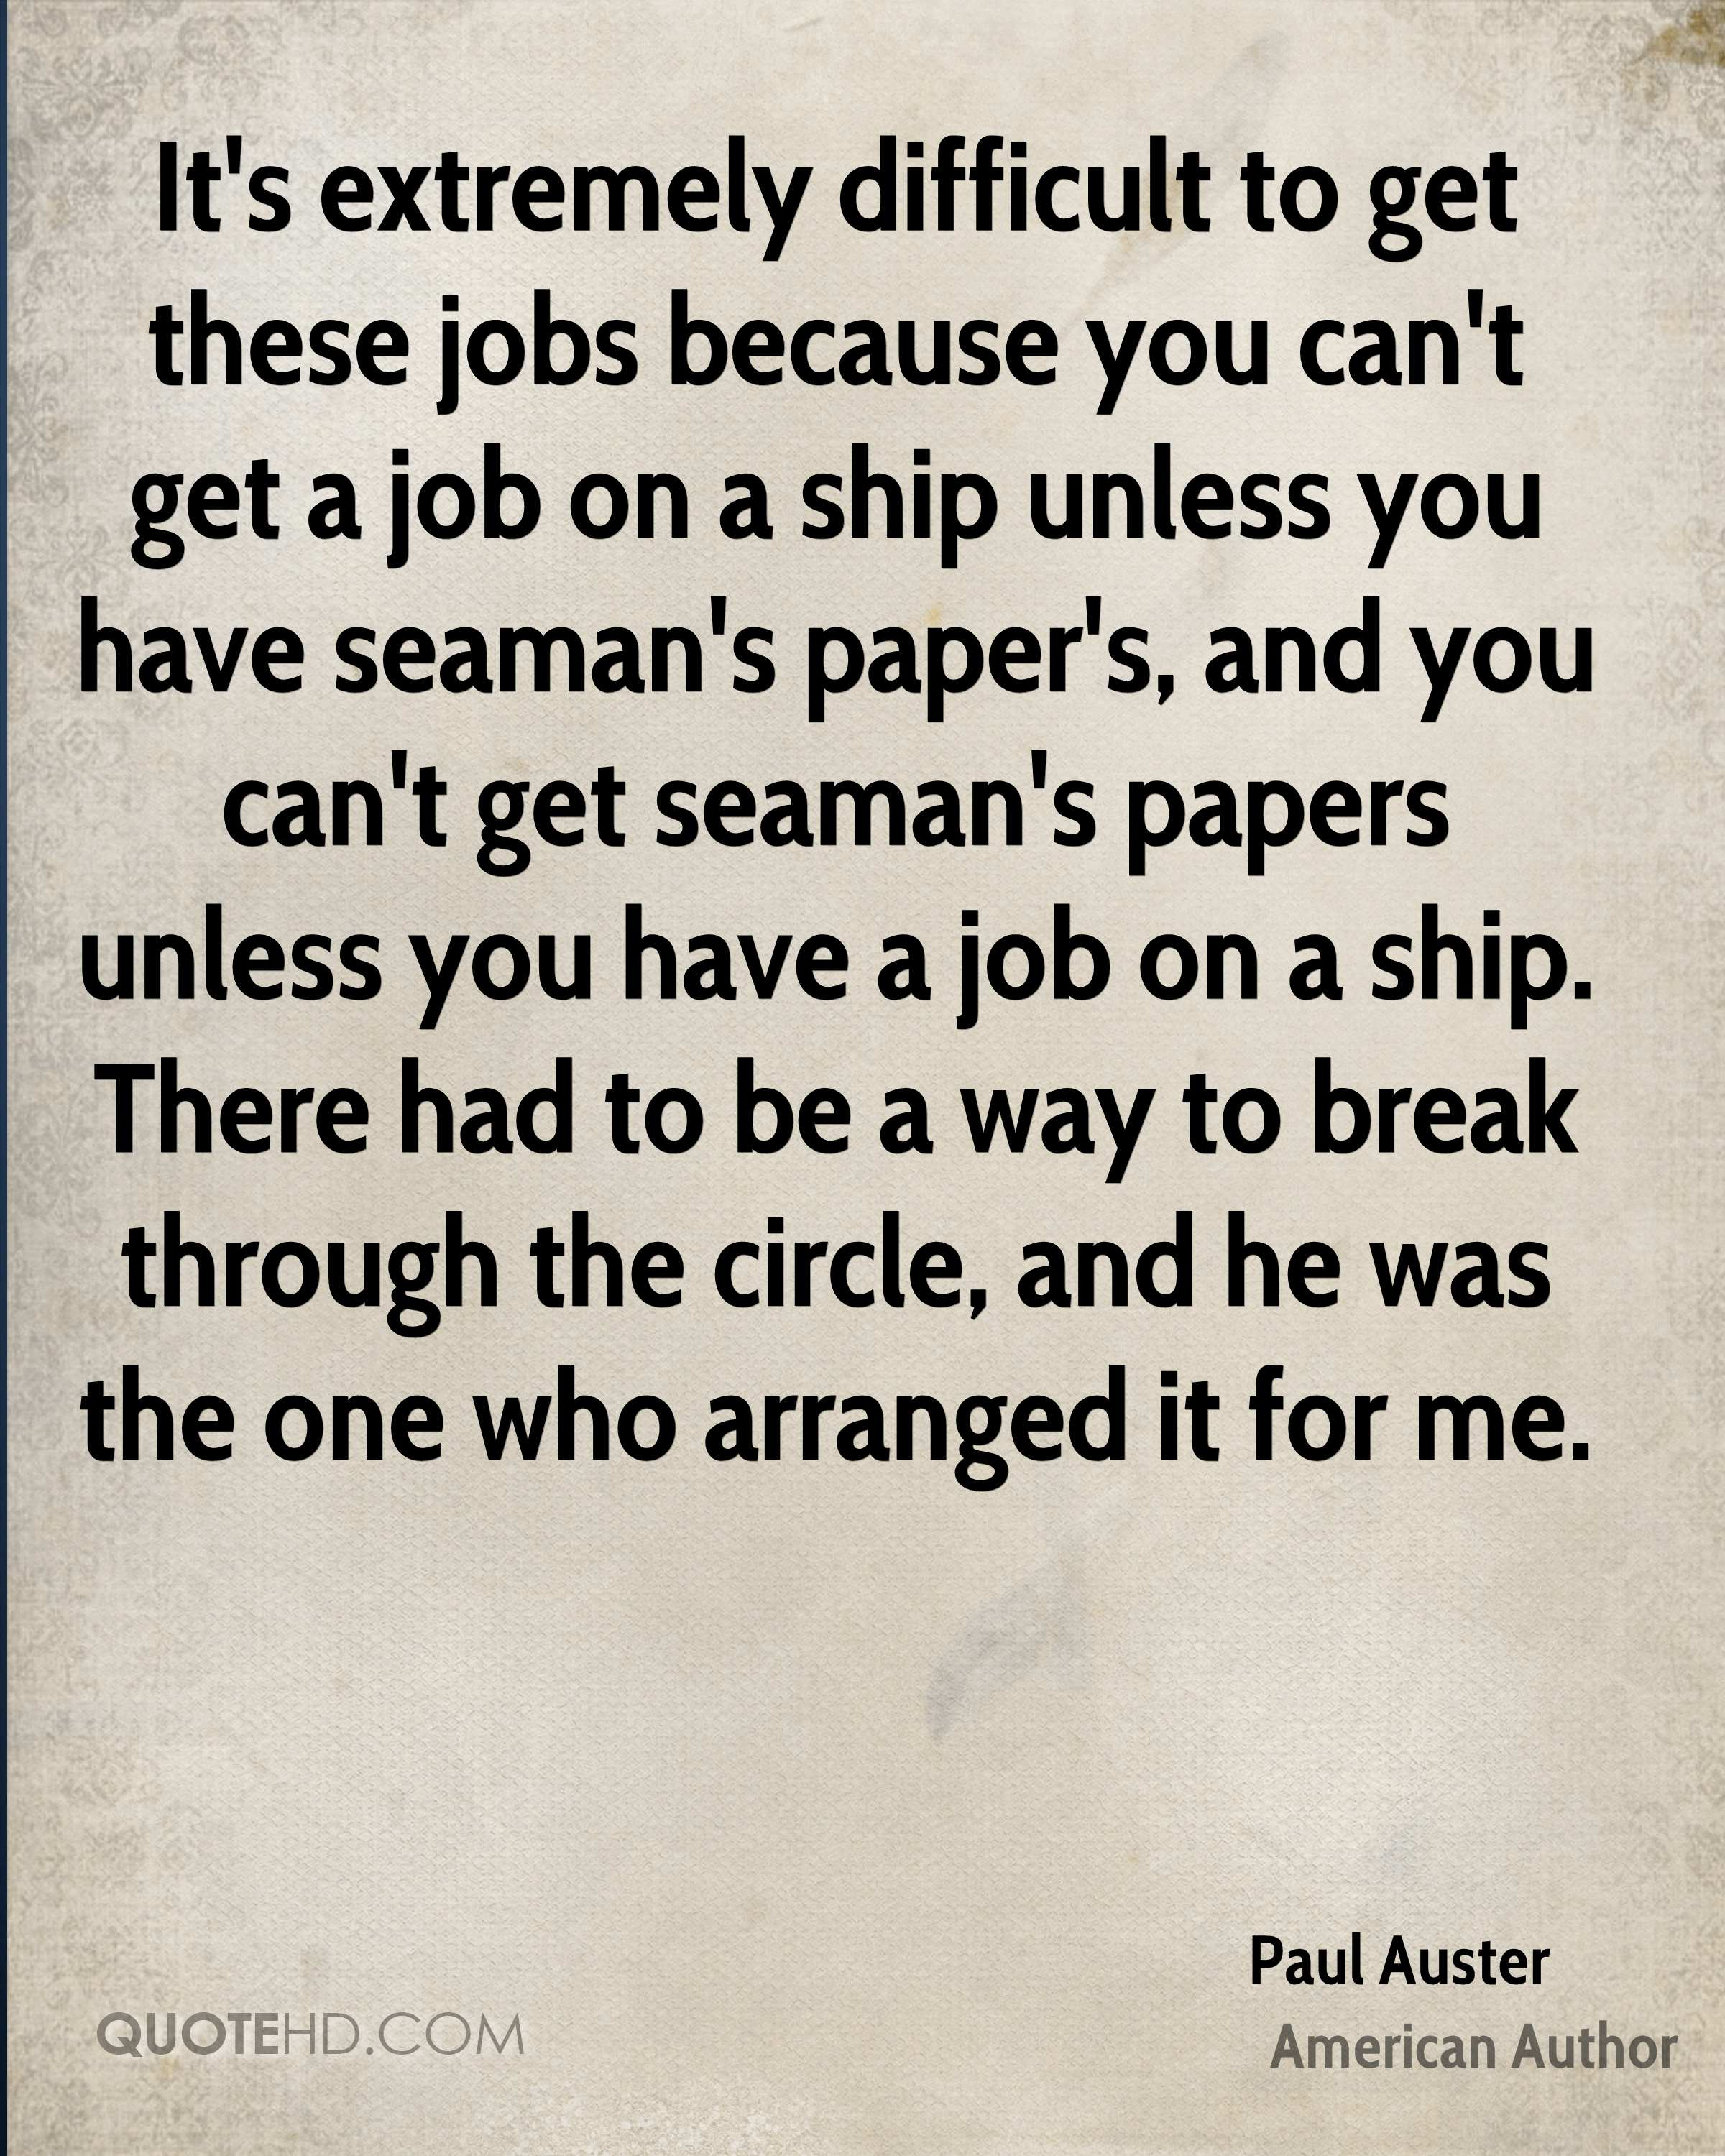 It's extremely difficult to get these jobs because you can't get a job on a ship unless you have seaman's paper's, and you can't get seaman's papers unless you have a job on a ship. There had to be a way to break through the circle, and he was the one who arranged it for me.